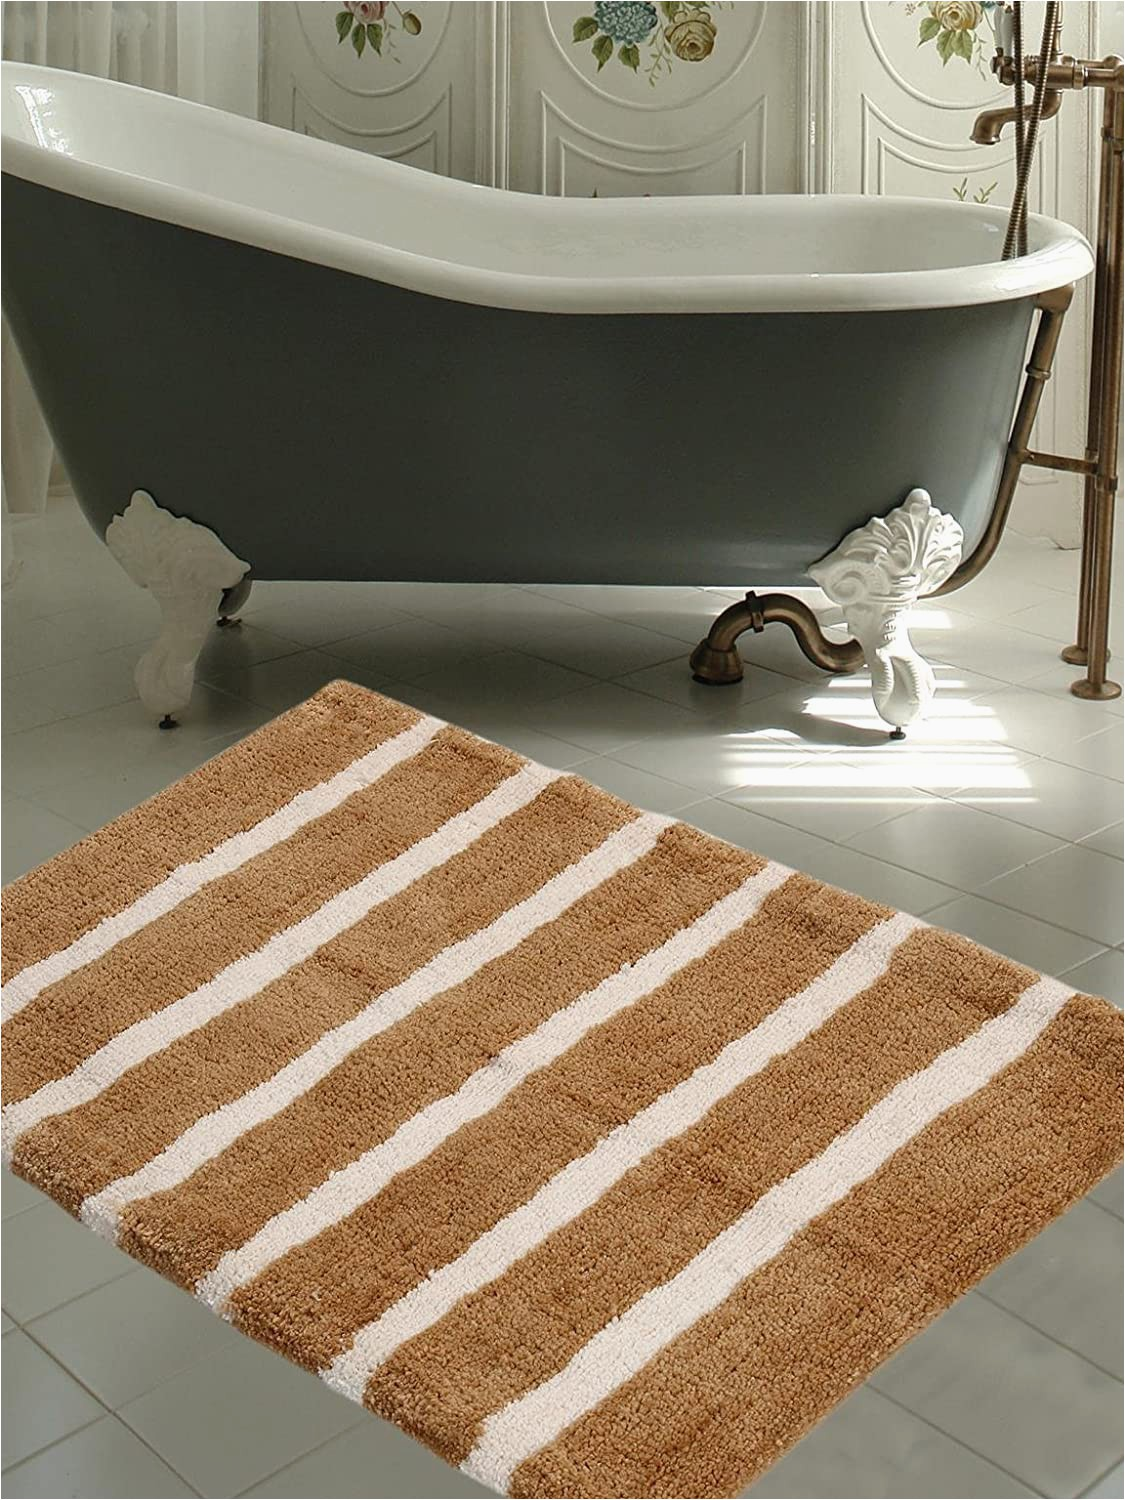 Plush Bath Mats Rugs Warisi Bold Stripes Collection Designer Plush Microfiber Bath Rug Beige Ivory